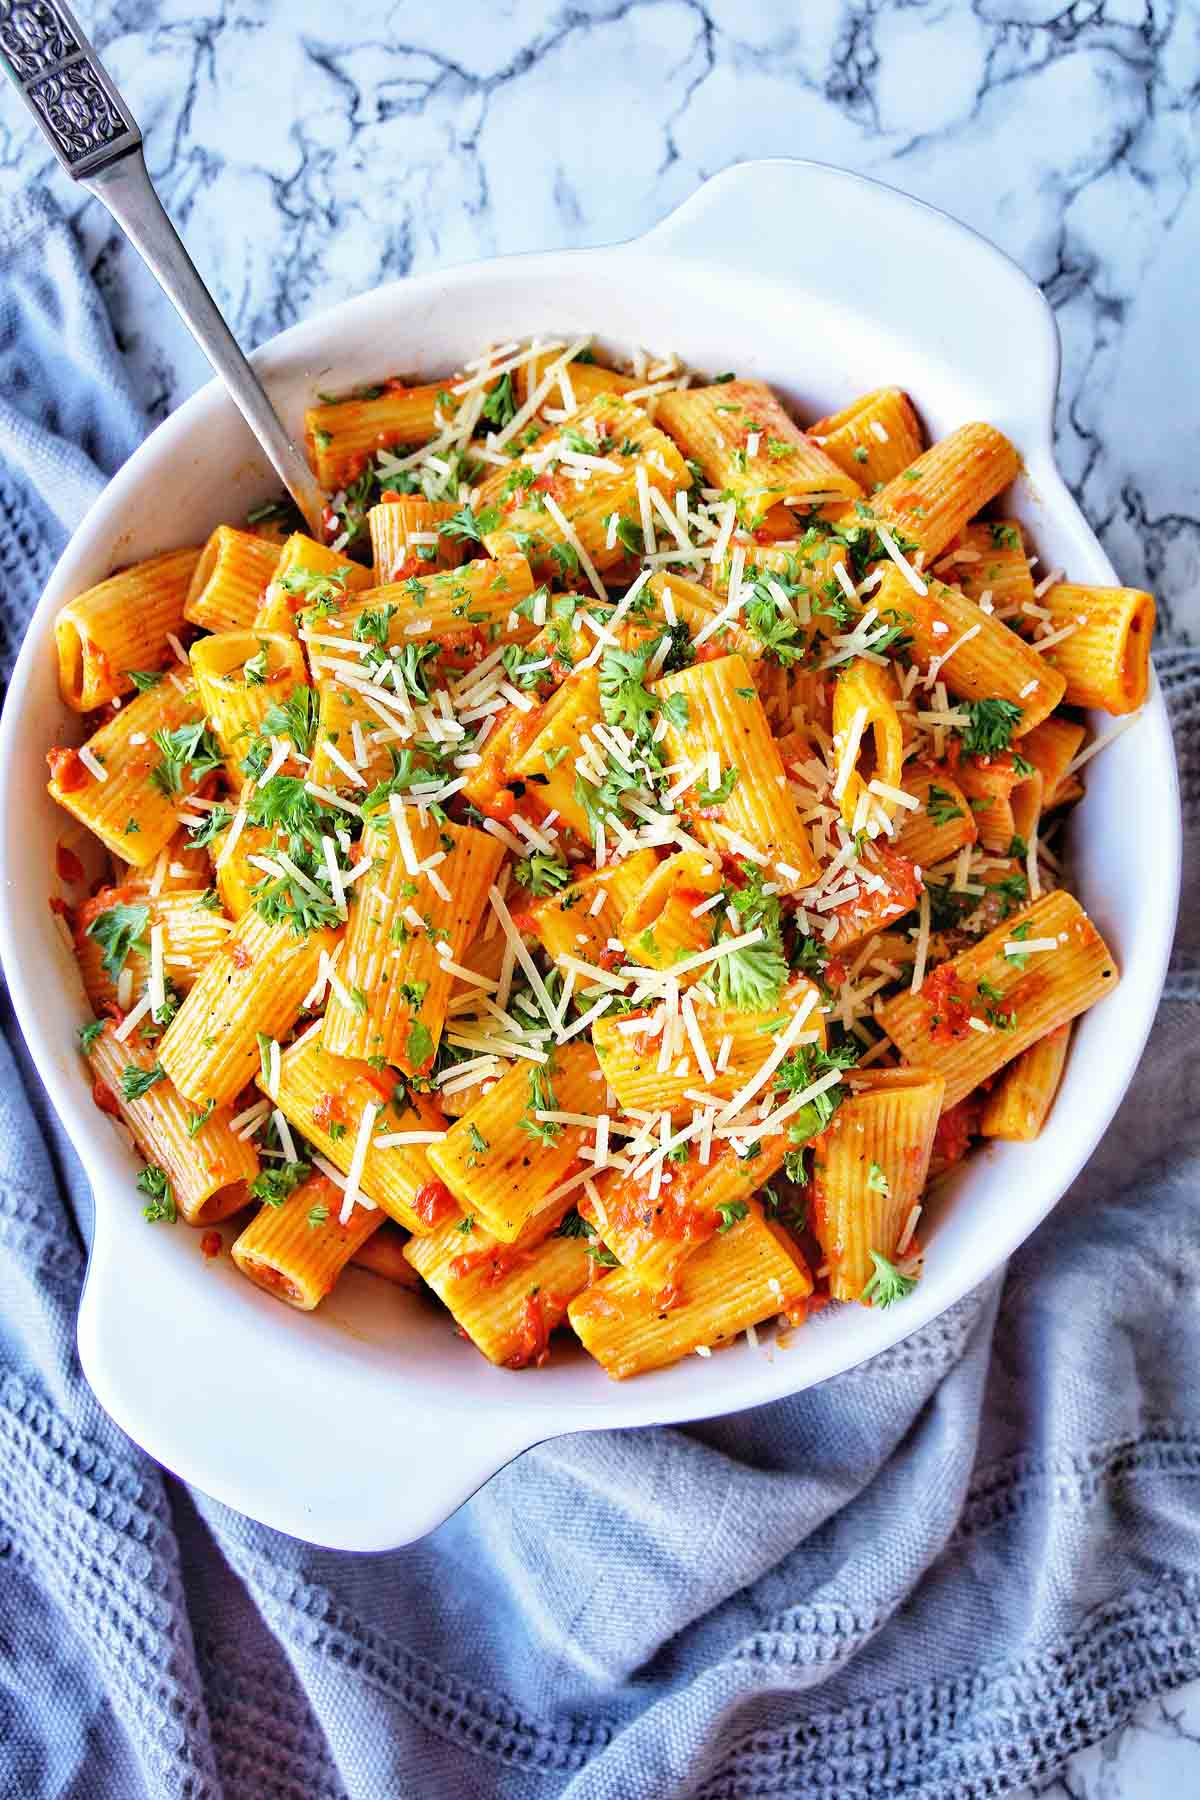 Rigatoni with jar sauce in a white bowl with server